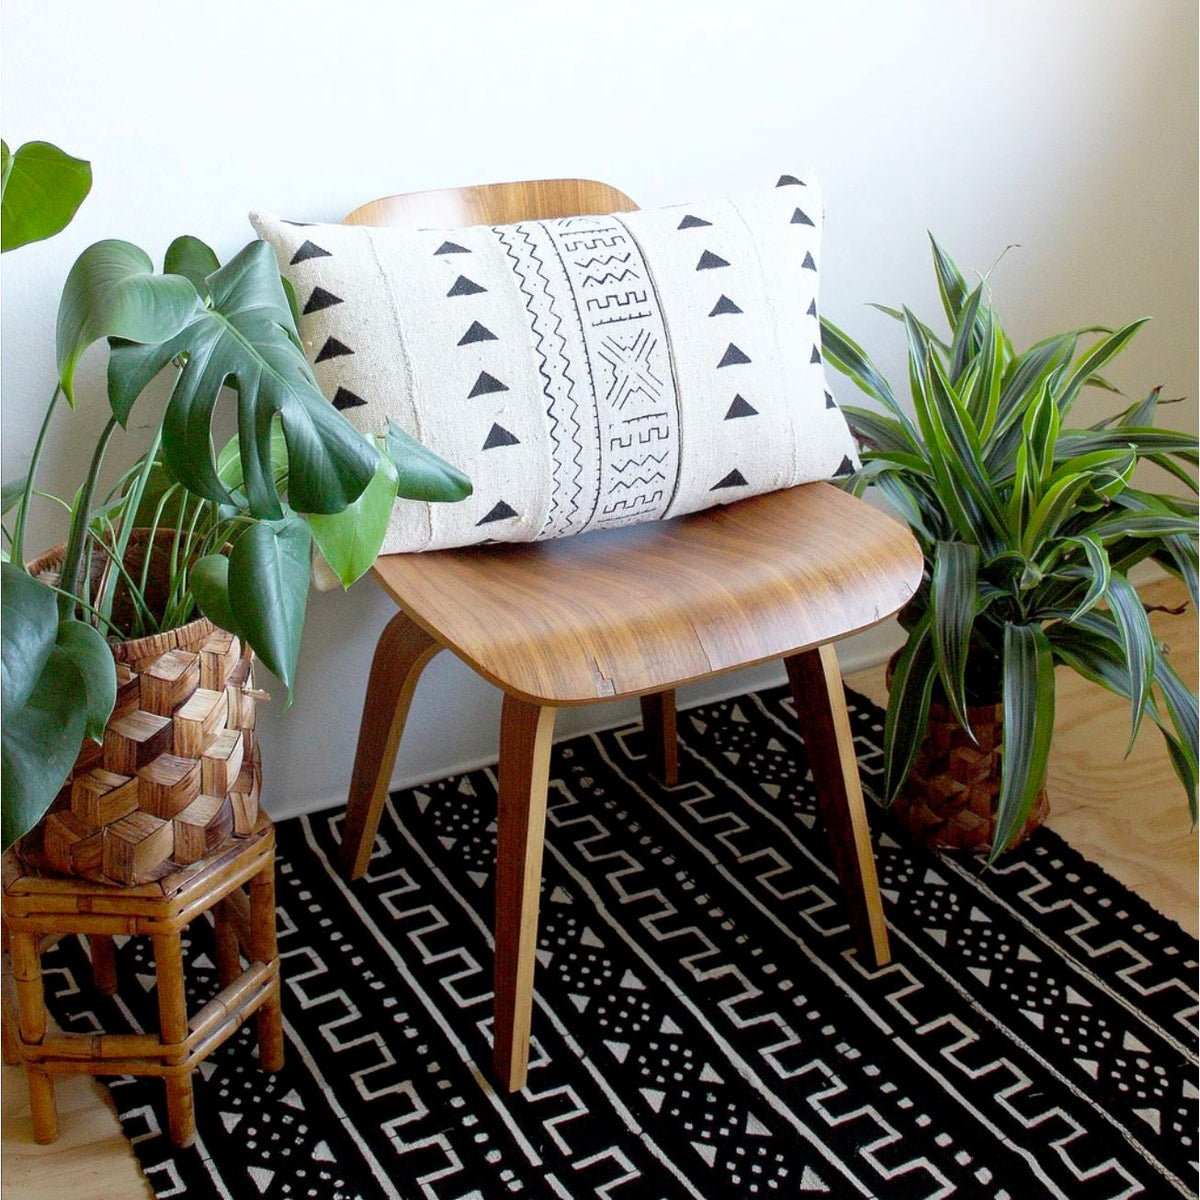 White Mudcloth with Triangles Lumbar Pillow Cover pillow Norwegian Wood